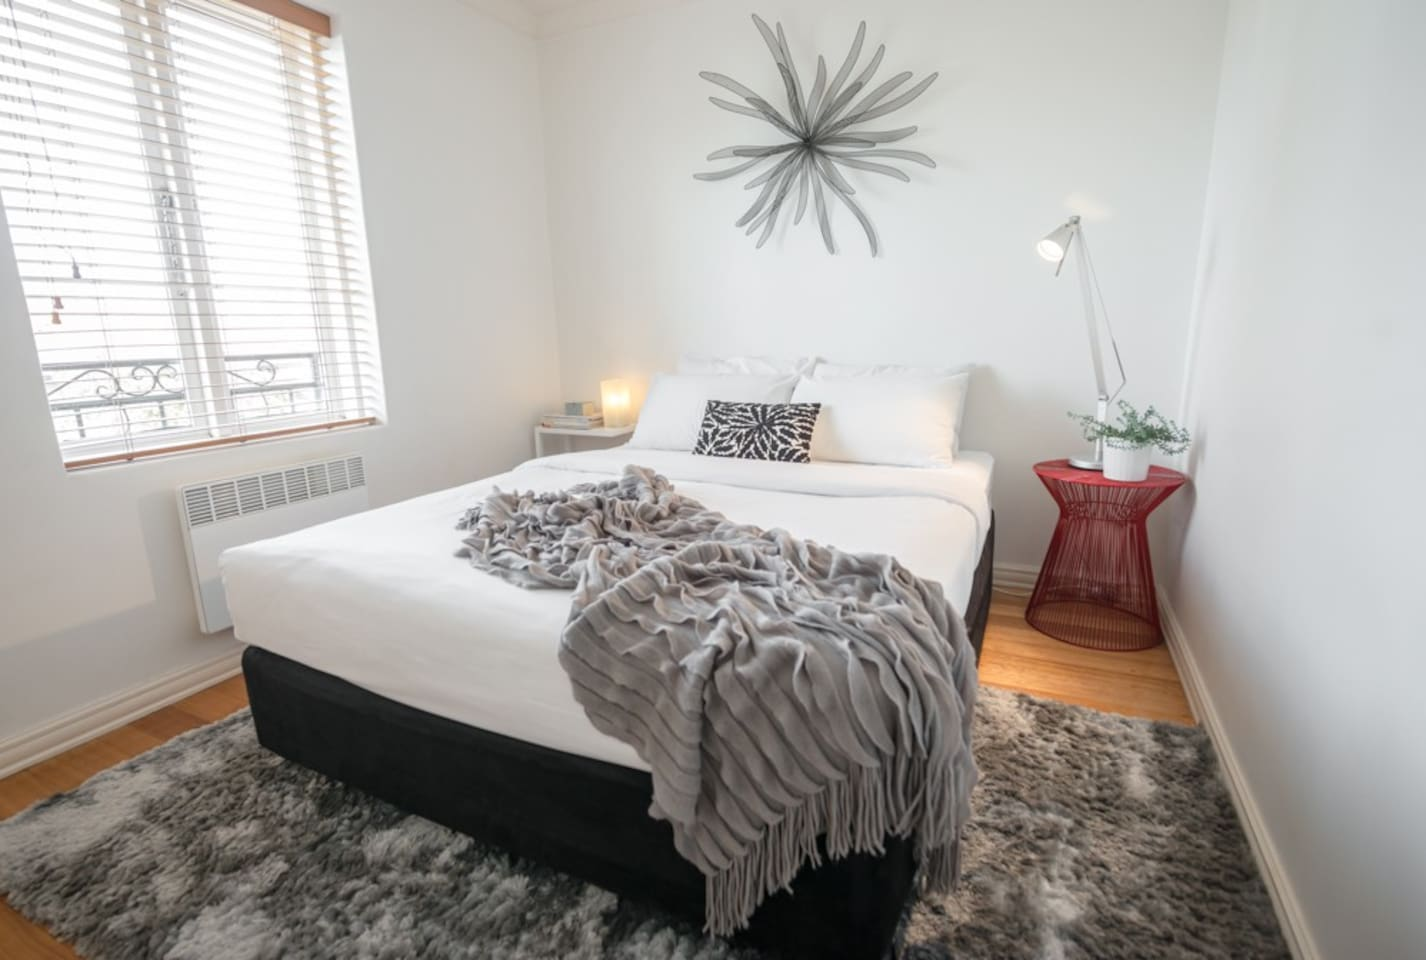 Luxurious bedroom with super comfy queen bed and hotel quality linens